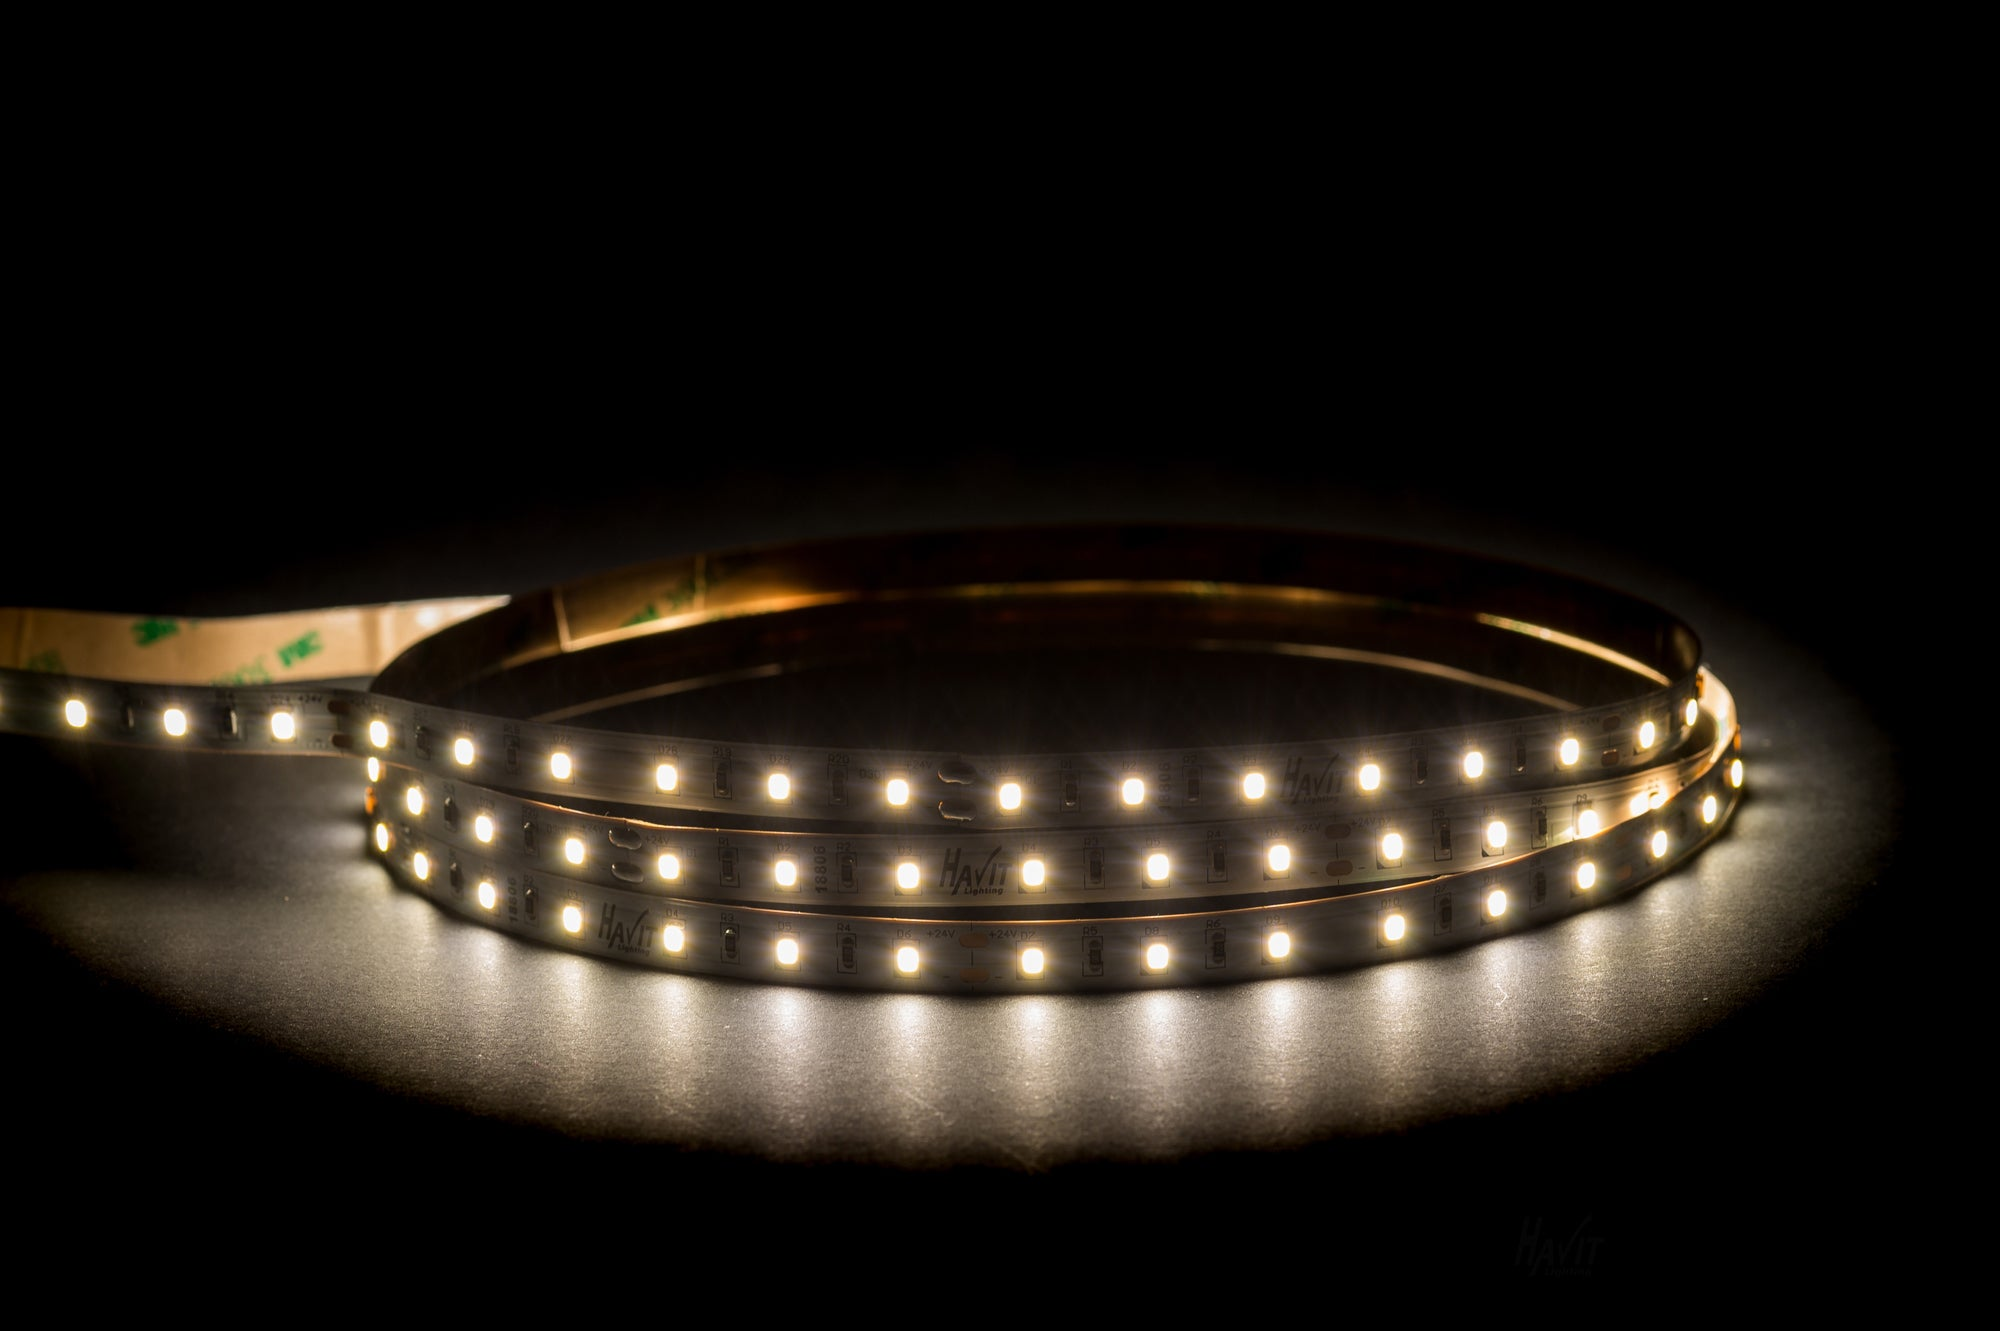 HV9782-IP20-80-5K - 14.4w 24v DC IP20 LED Strip 5500k